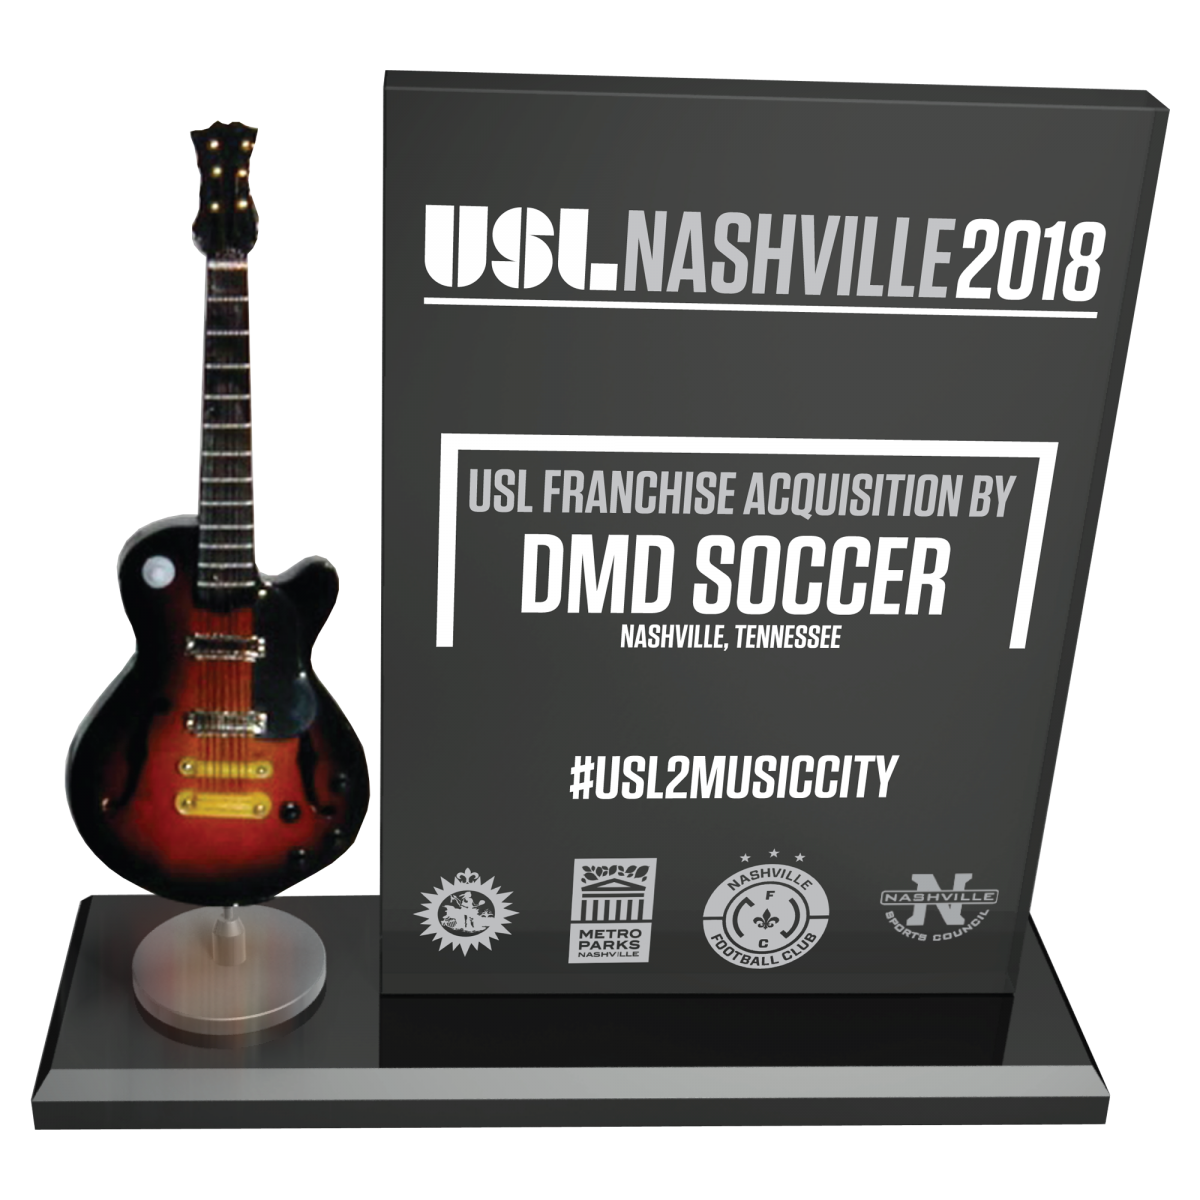 USL Nashville 2018 Deal Toy